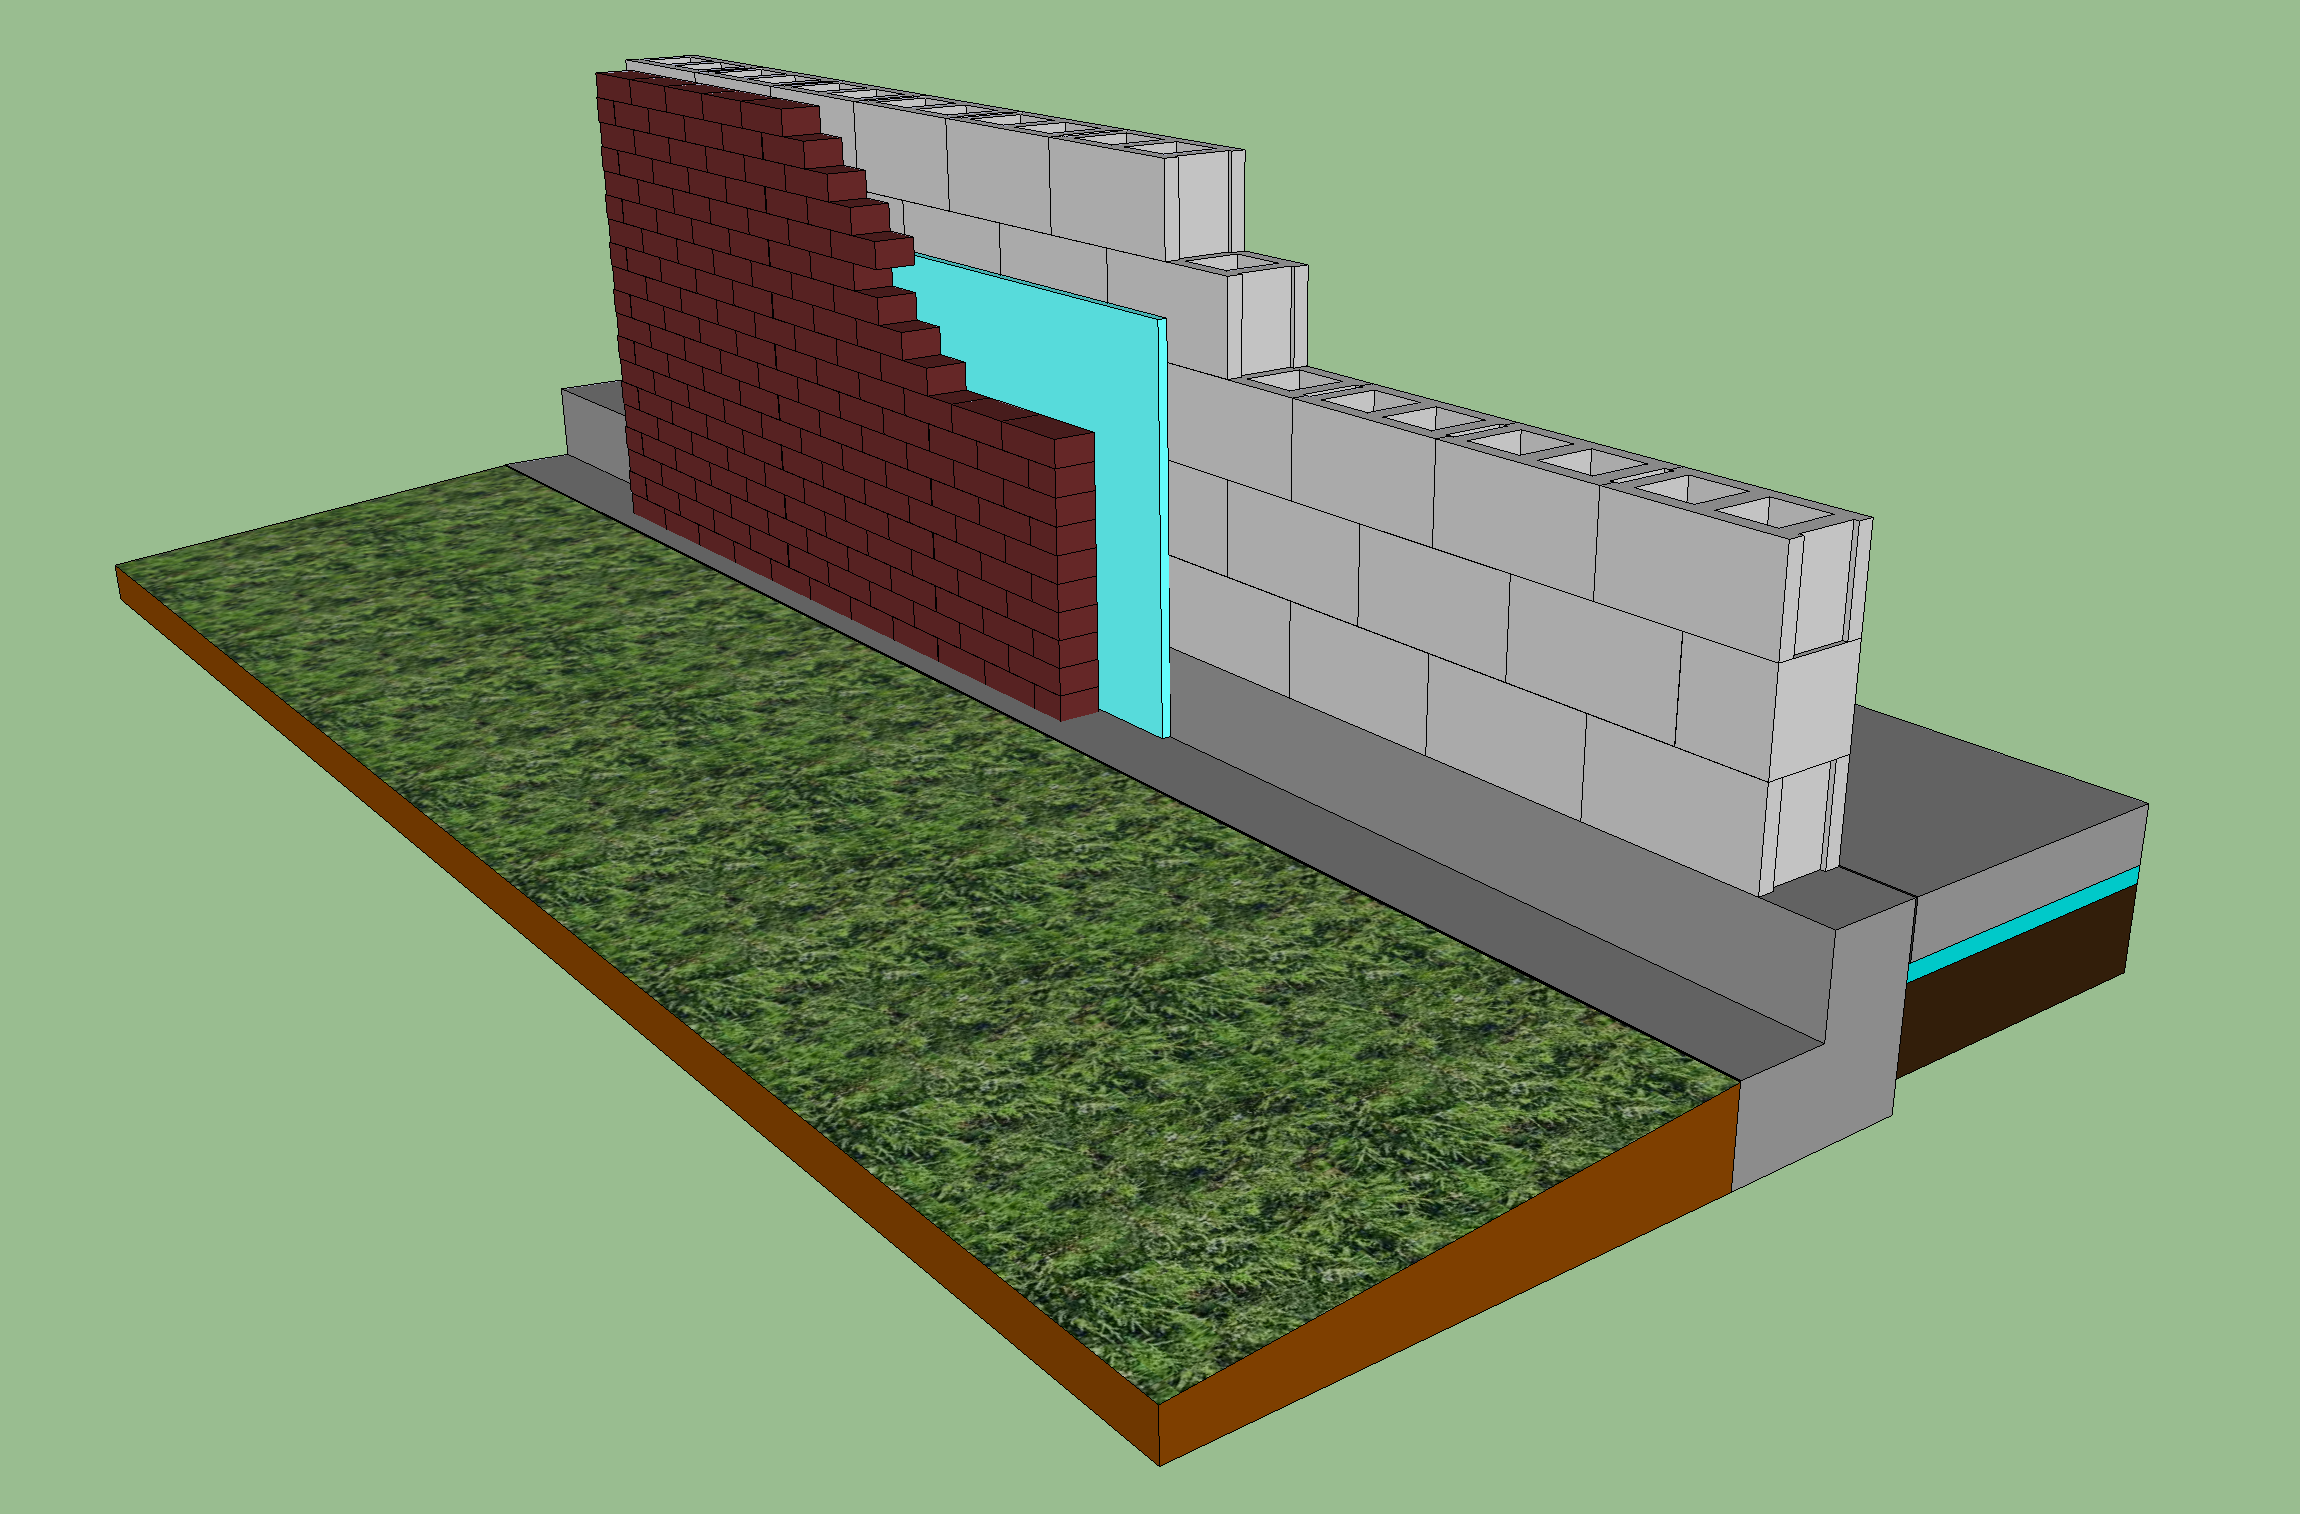 Concrete And Brick Wall With Foam Insulation Layer Green Building Foam Insulation Brick Wall